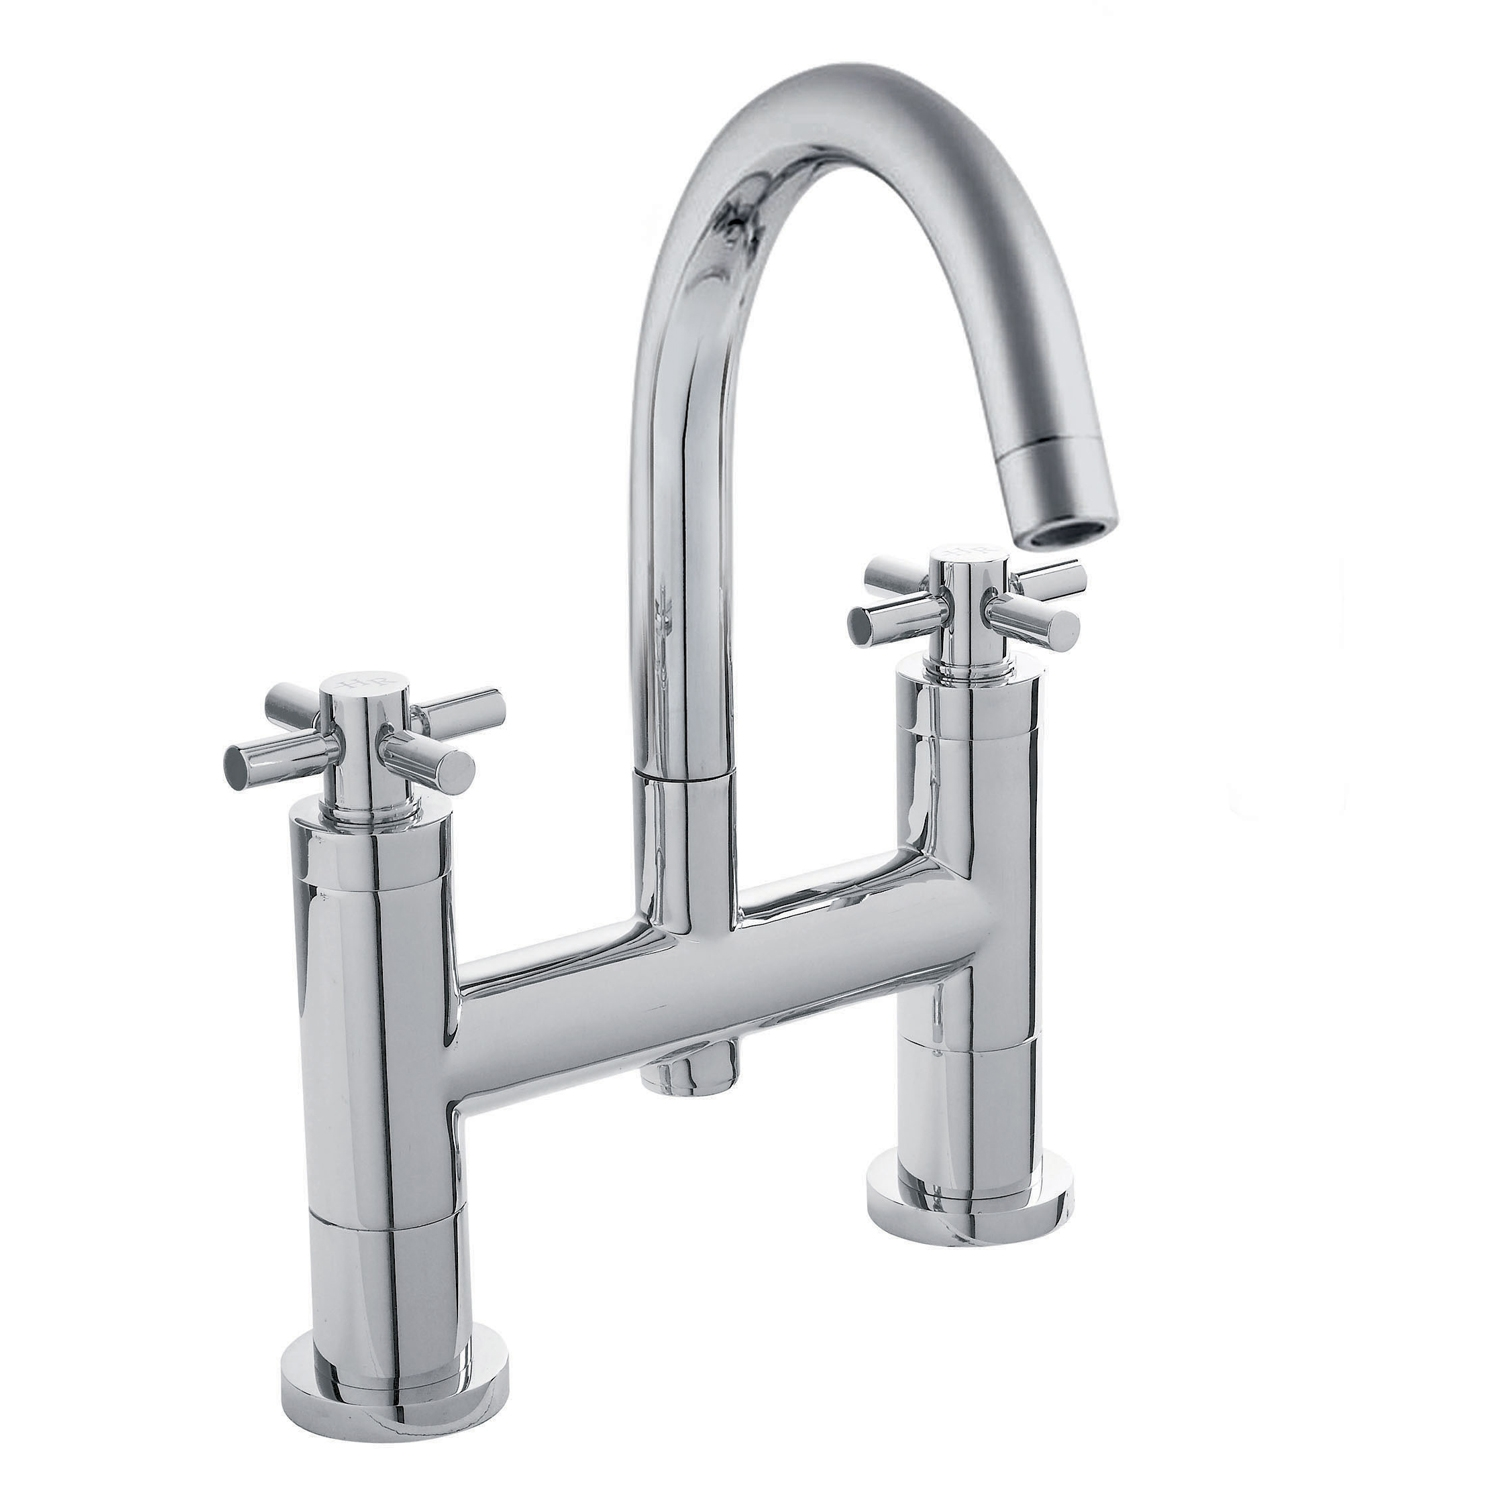 Hudson Reed Tec Crosshead 3 Hole Basin Mixer Tap and Bath Filler Tap, Chrome